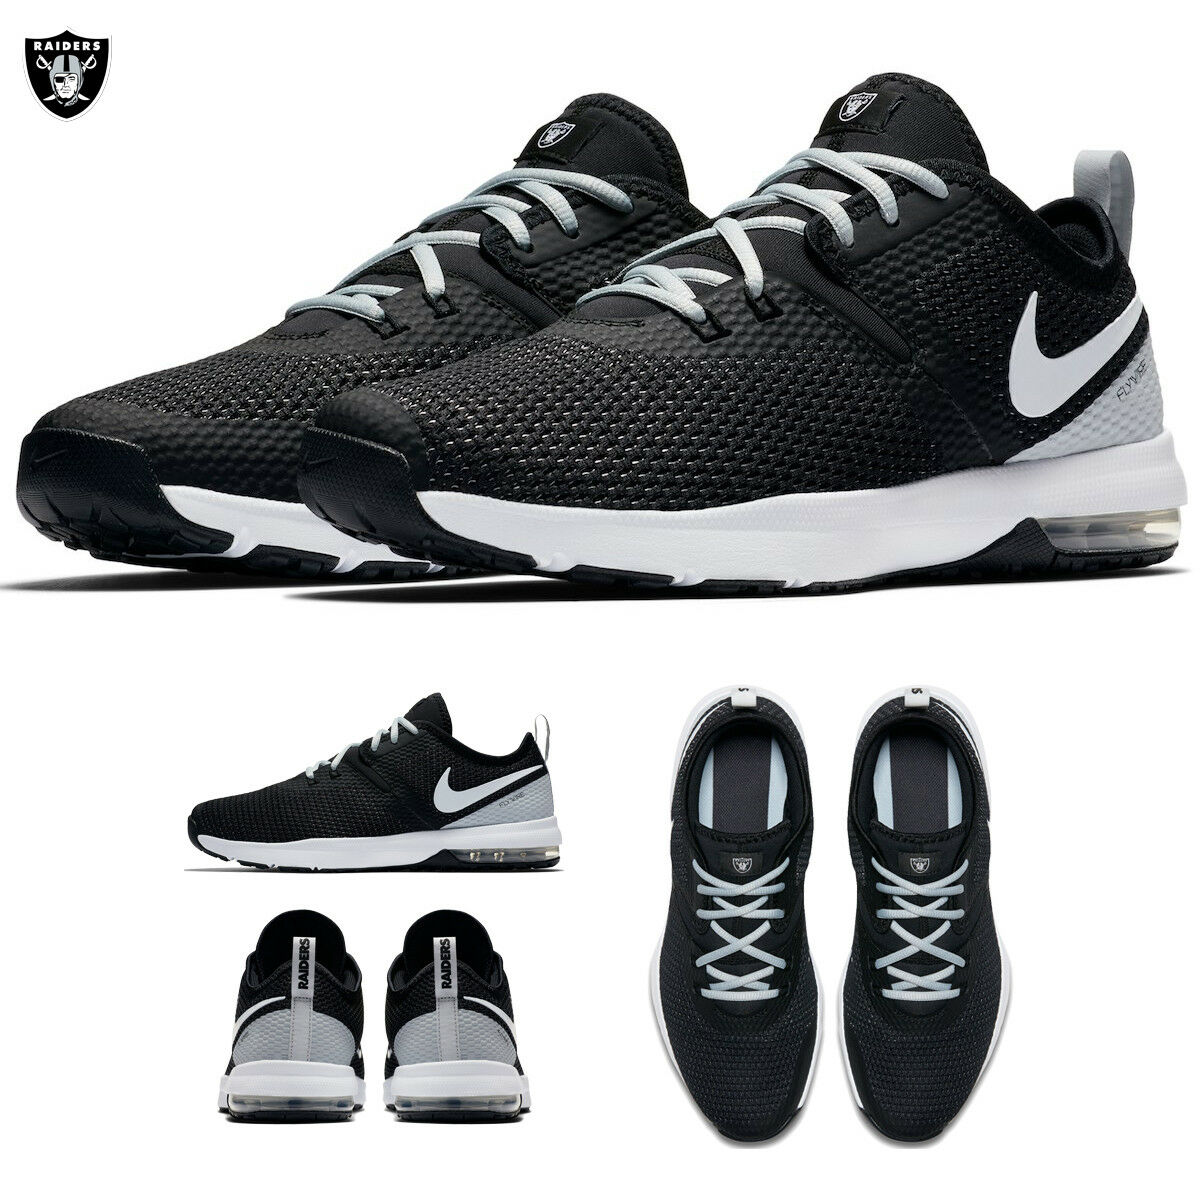 Oakland Raiders Nike Air Max Typha 2 Παπούτσια NFL 2018 Limited Edition NWT Ξ₯ποδΞ�ματα